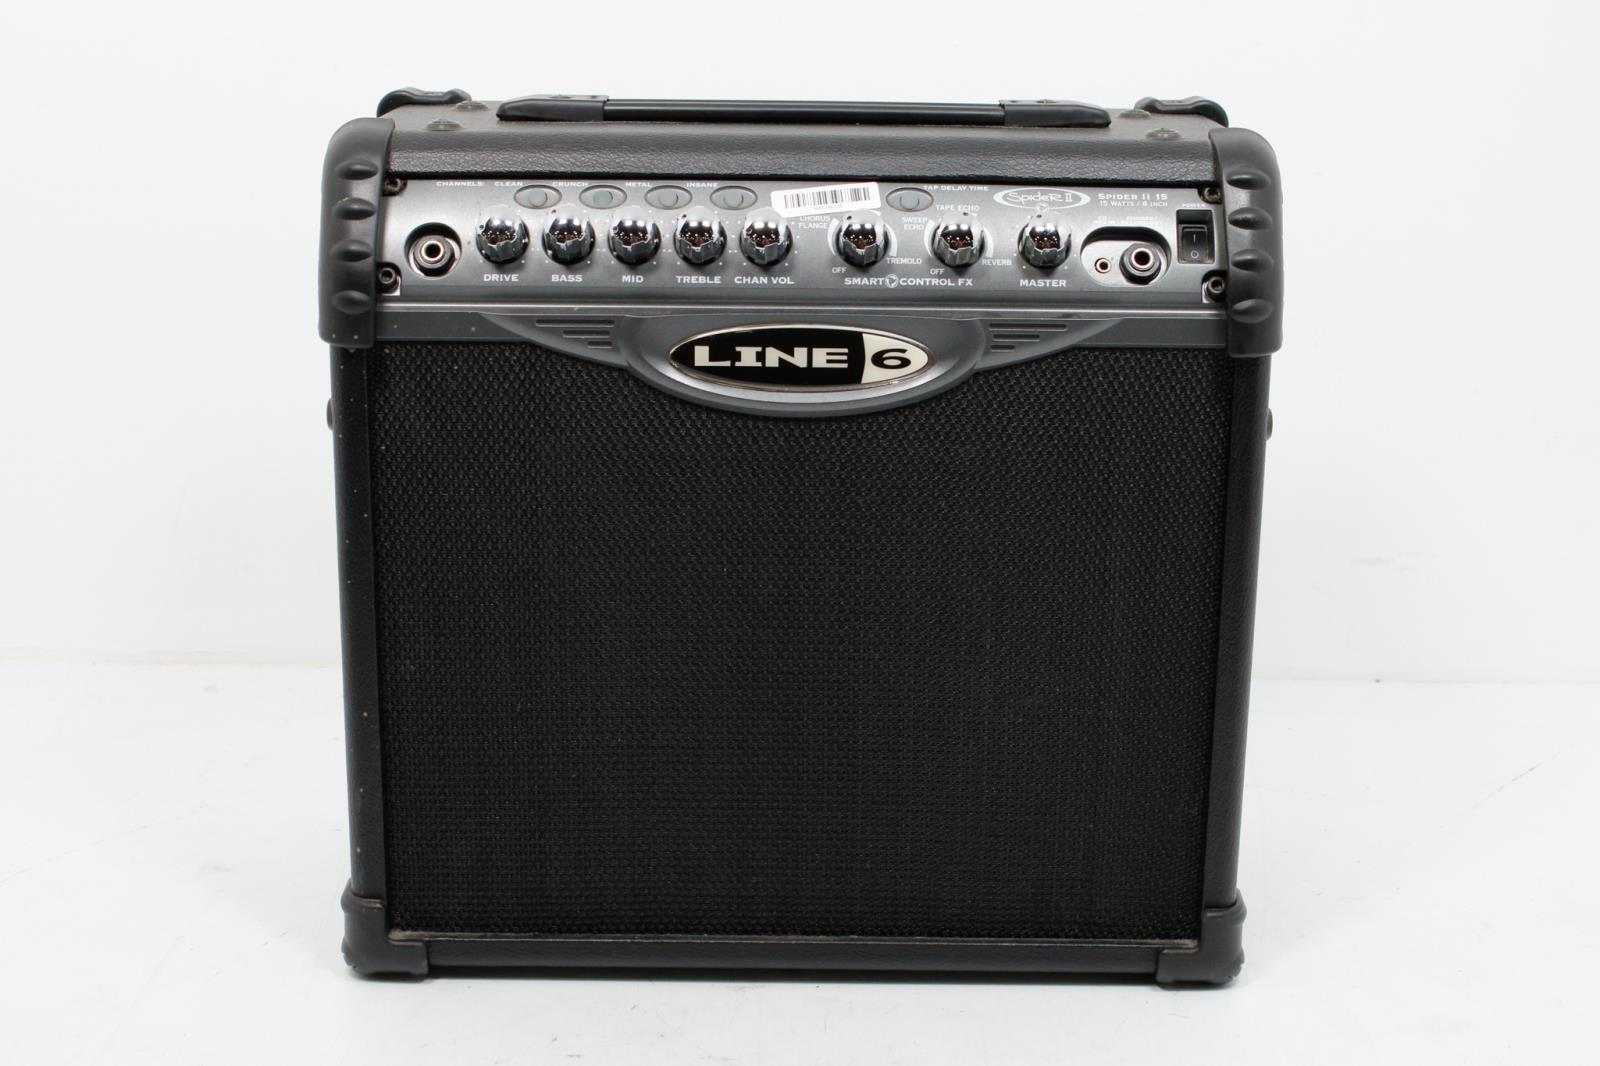 line 6 spider iii 15 15 watt guitar amp for sale online ebay. Black Bedroom Furniture Sets. Home Design Ideas